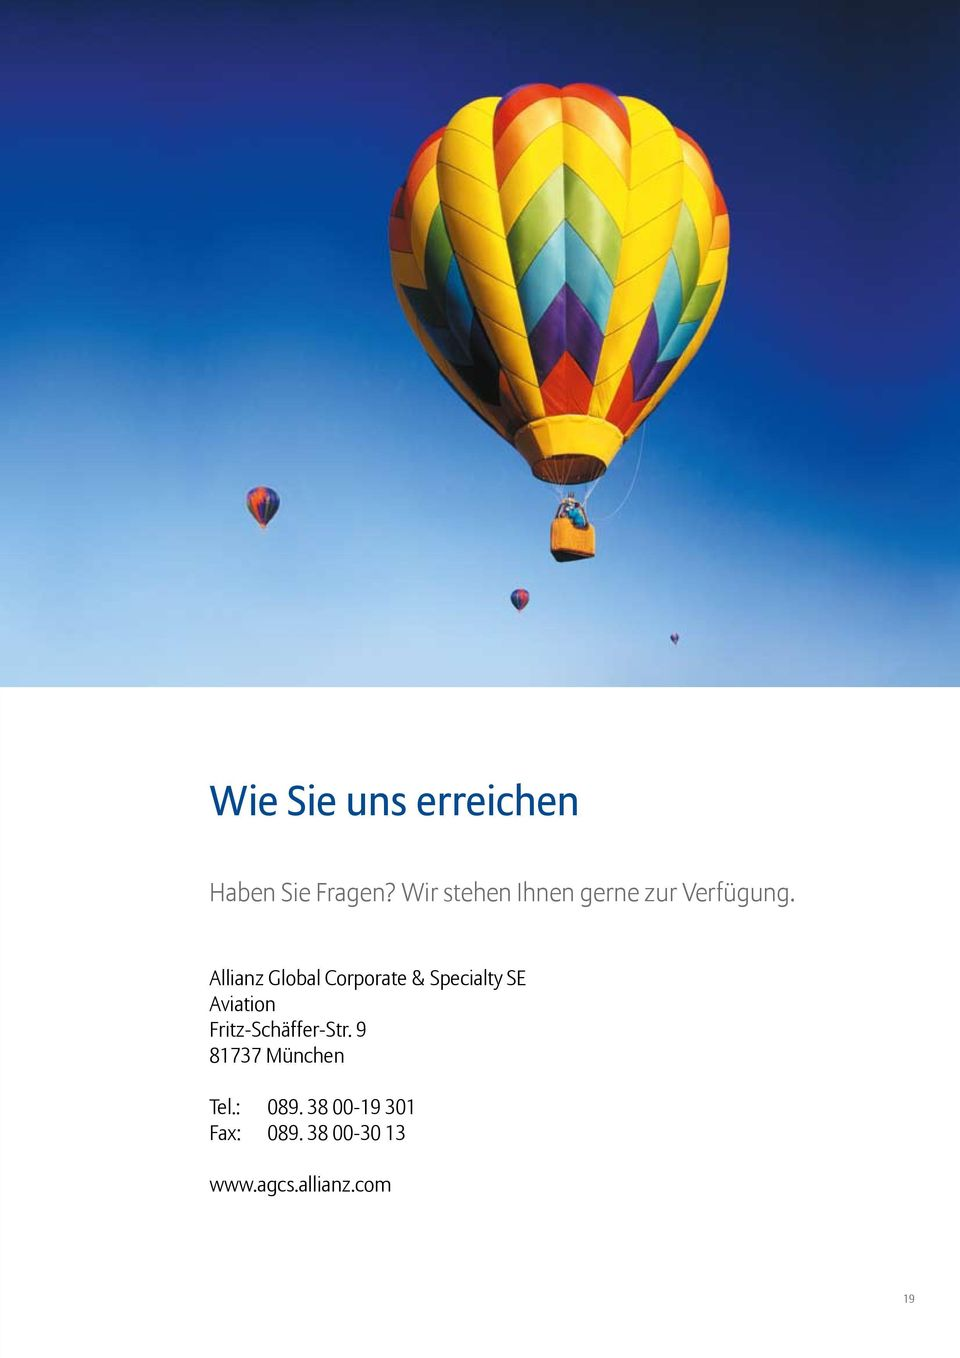 Allianz Global Corporate & Specialty SE Aviation